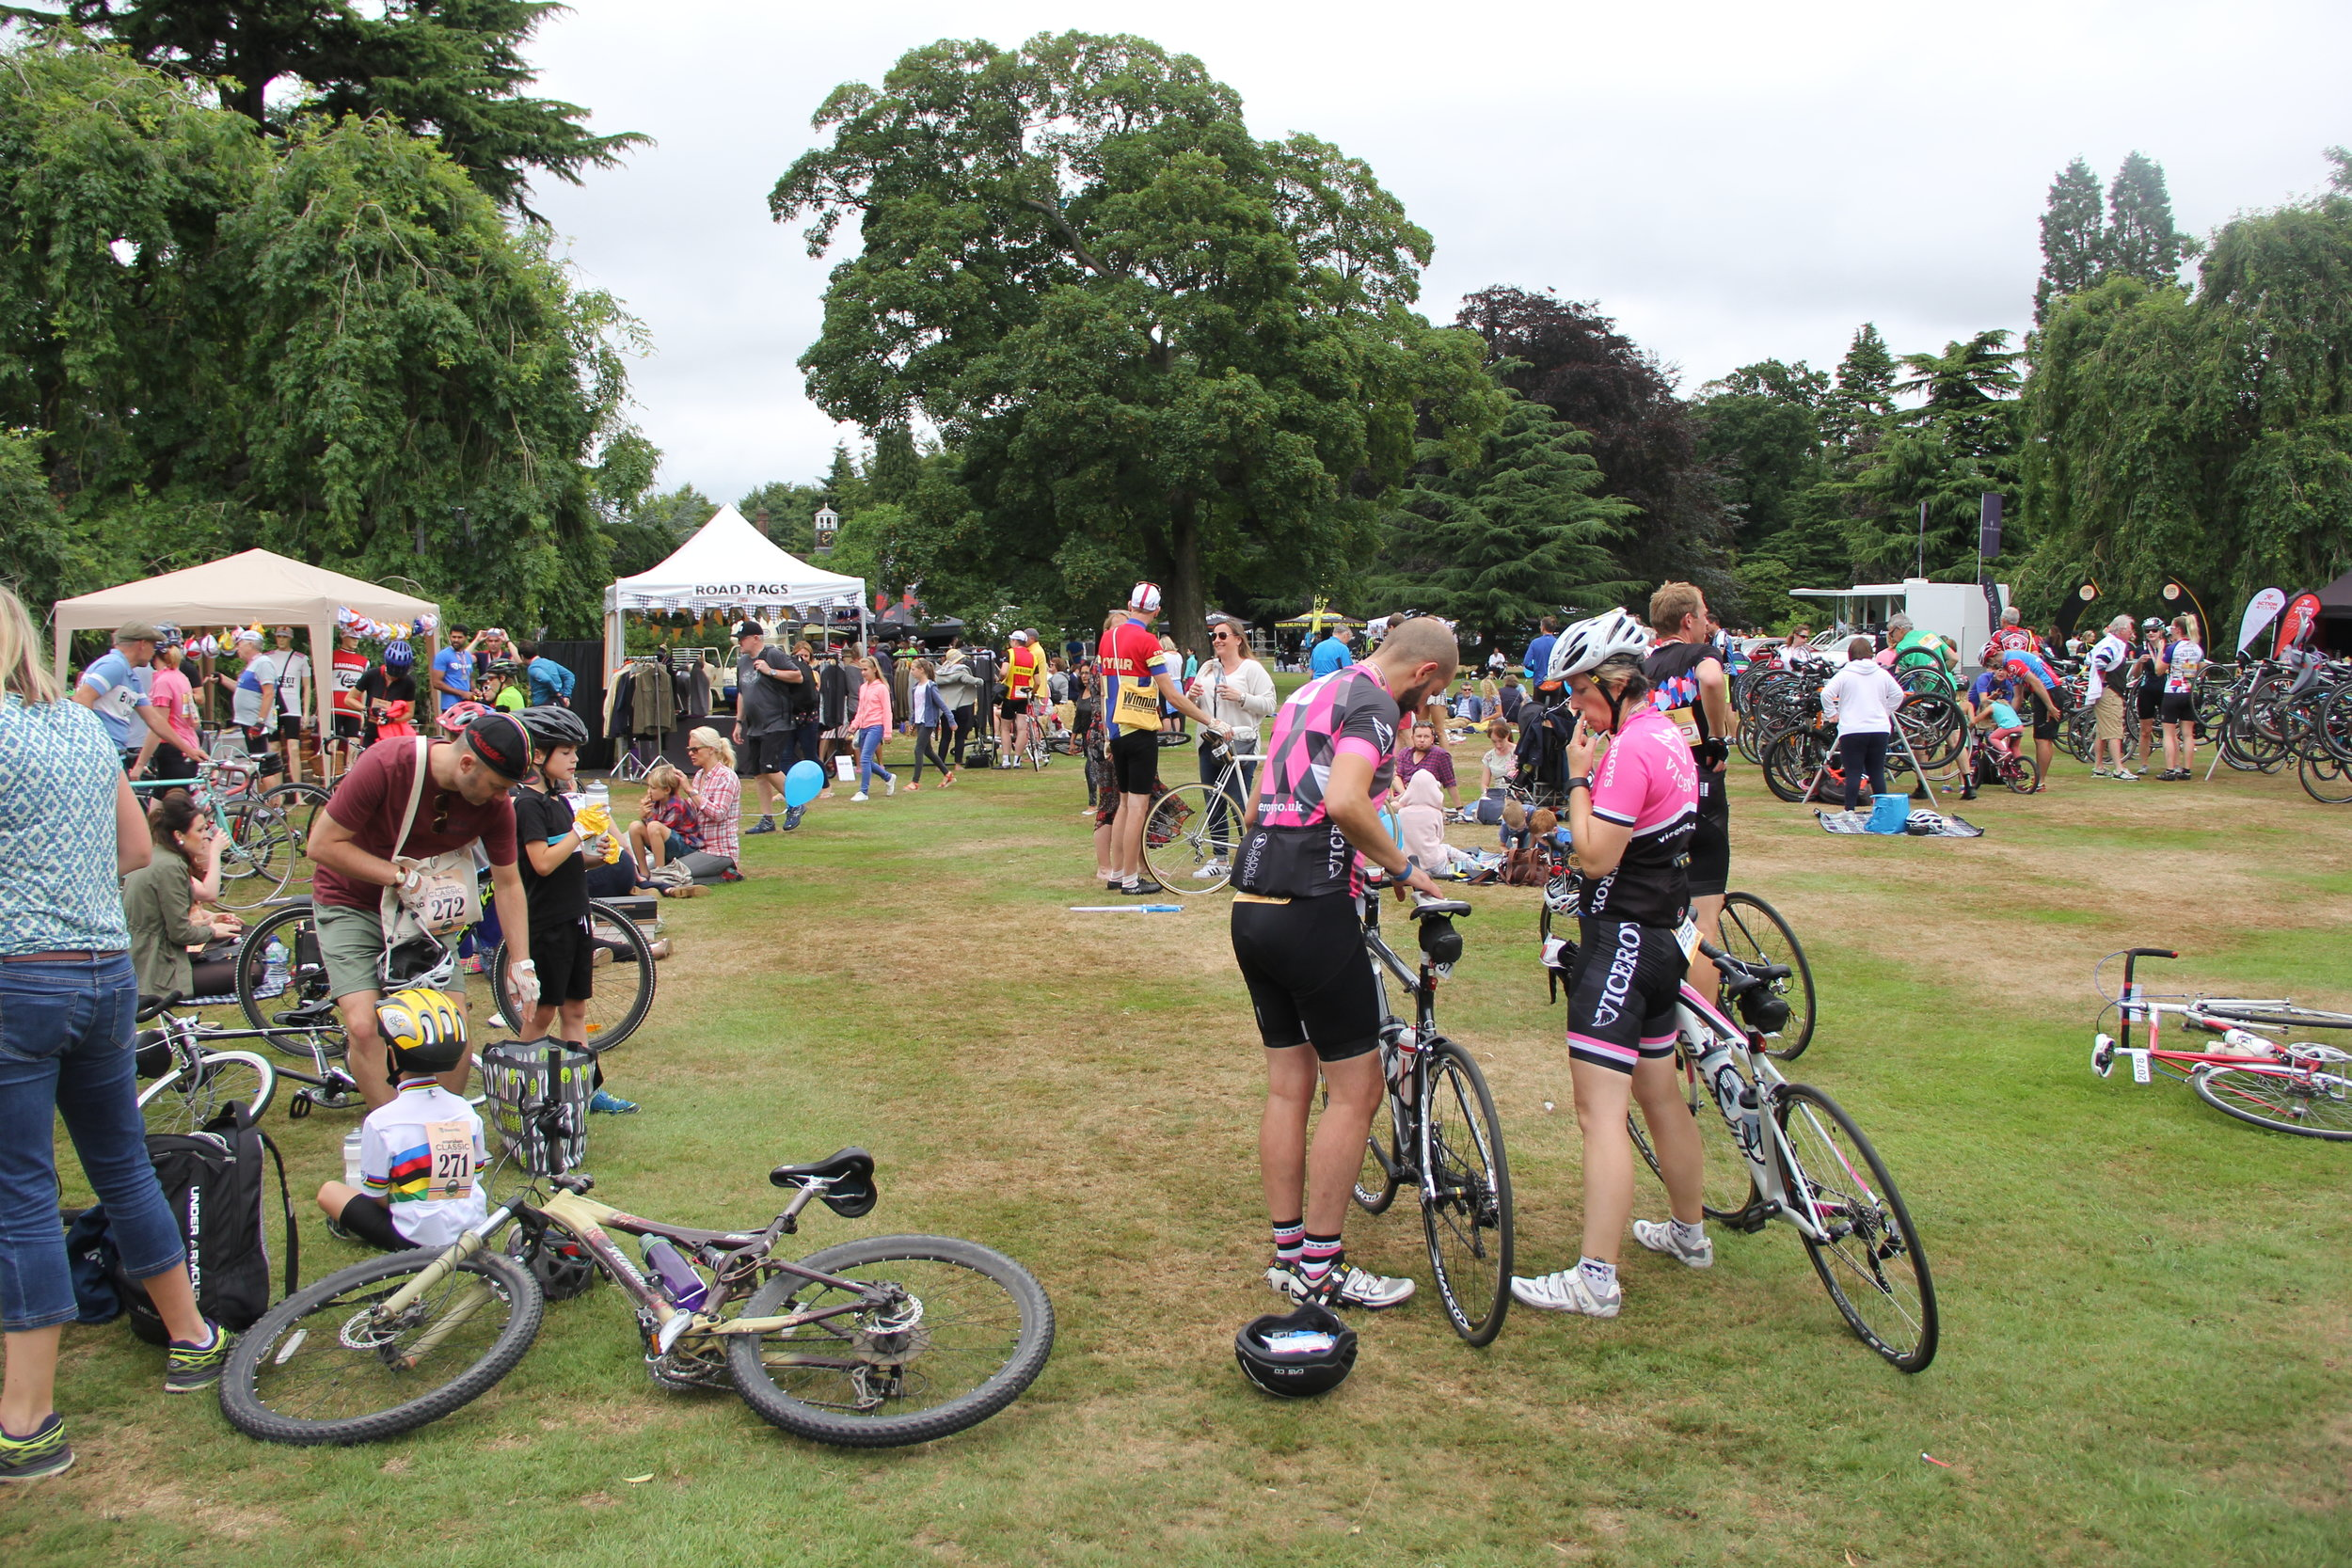 Stalls, food and drink, entertainment, the Tour de France...what more could you want?